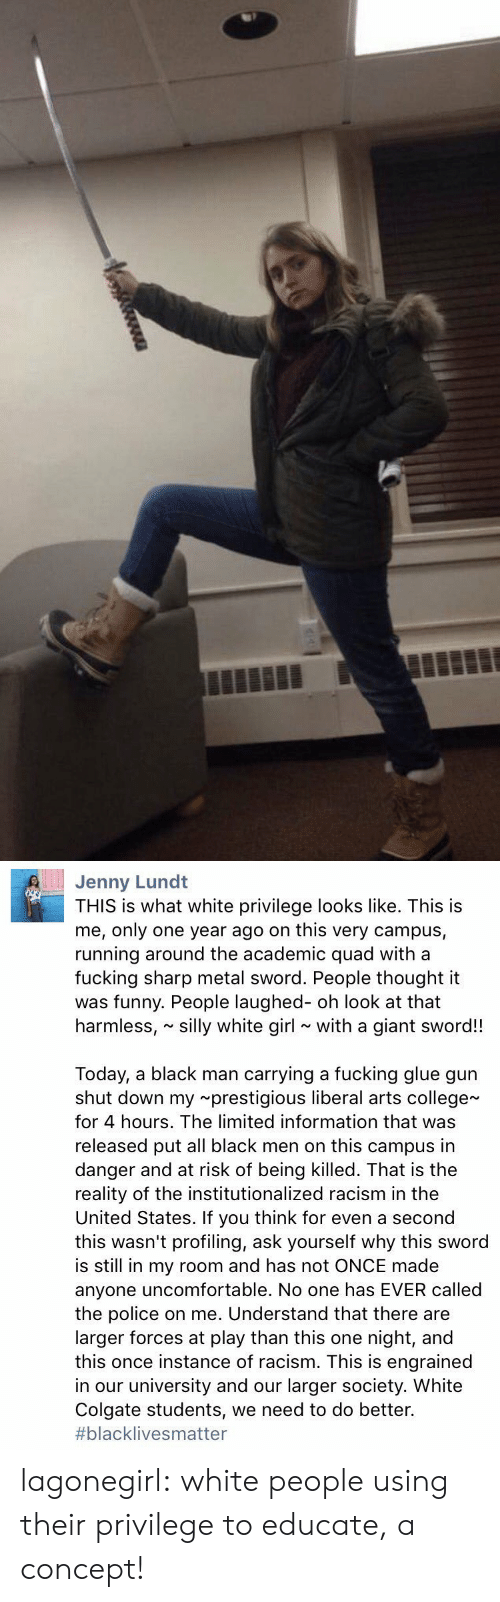 this is me: Jenny Lund  THIS is what white privilege looks like. This is  me, only one year ago on this very campus,  running around the academic quad with a  fucking sharp metal sword. People thought it  was funny. People laughed- oh look at that  harmless, silly white girl with a giant sword!!  Today, a black man carrying a fucking glue gun  shut down my prestigious liberal arts college  for 4 hours. The limited information that was  released put all black men on this campus in  danger and at risk of being killed. That is the  reality of the institutionalized racism in the  United States. If you think for even a second  this wasn't profiling, ask yourself why this sword  is still in my room and has not ONCE made  anyone uncomfortable. No one has EVER called  the police on me. Understand that there are  larger forces at play than this one night, and  this once instance of racism. This is engrained  in our university and our larger society. White  Colgate students, we need to do better.  #blackIive s matter lagonegirl:   white people using their privilege to educate, a concept!